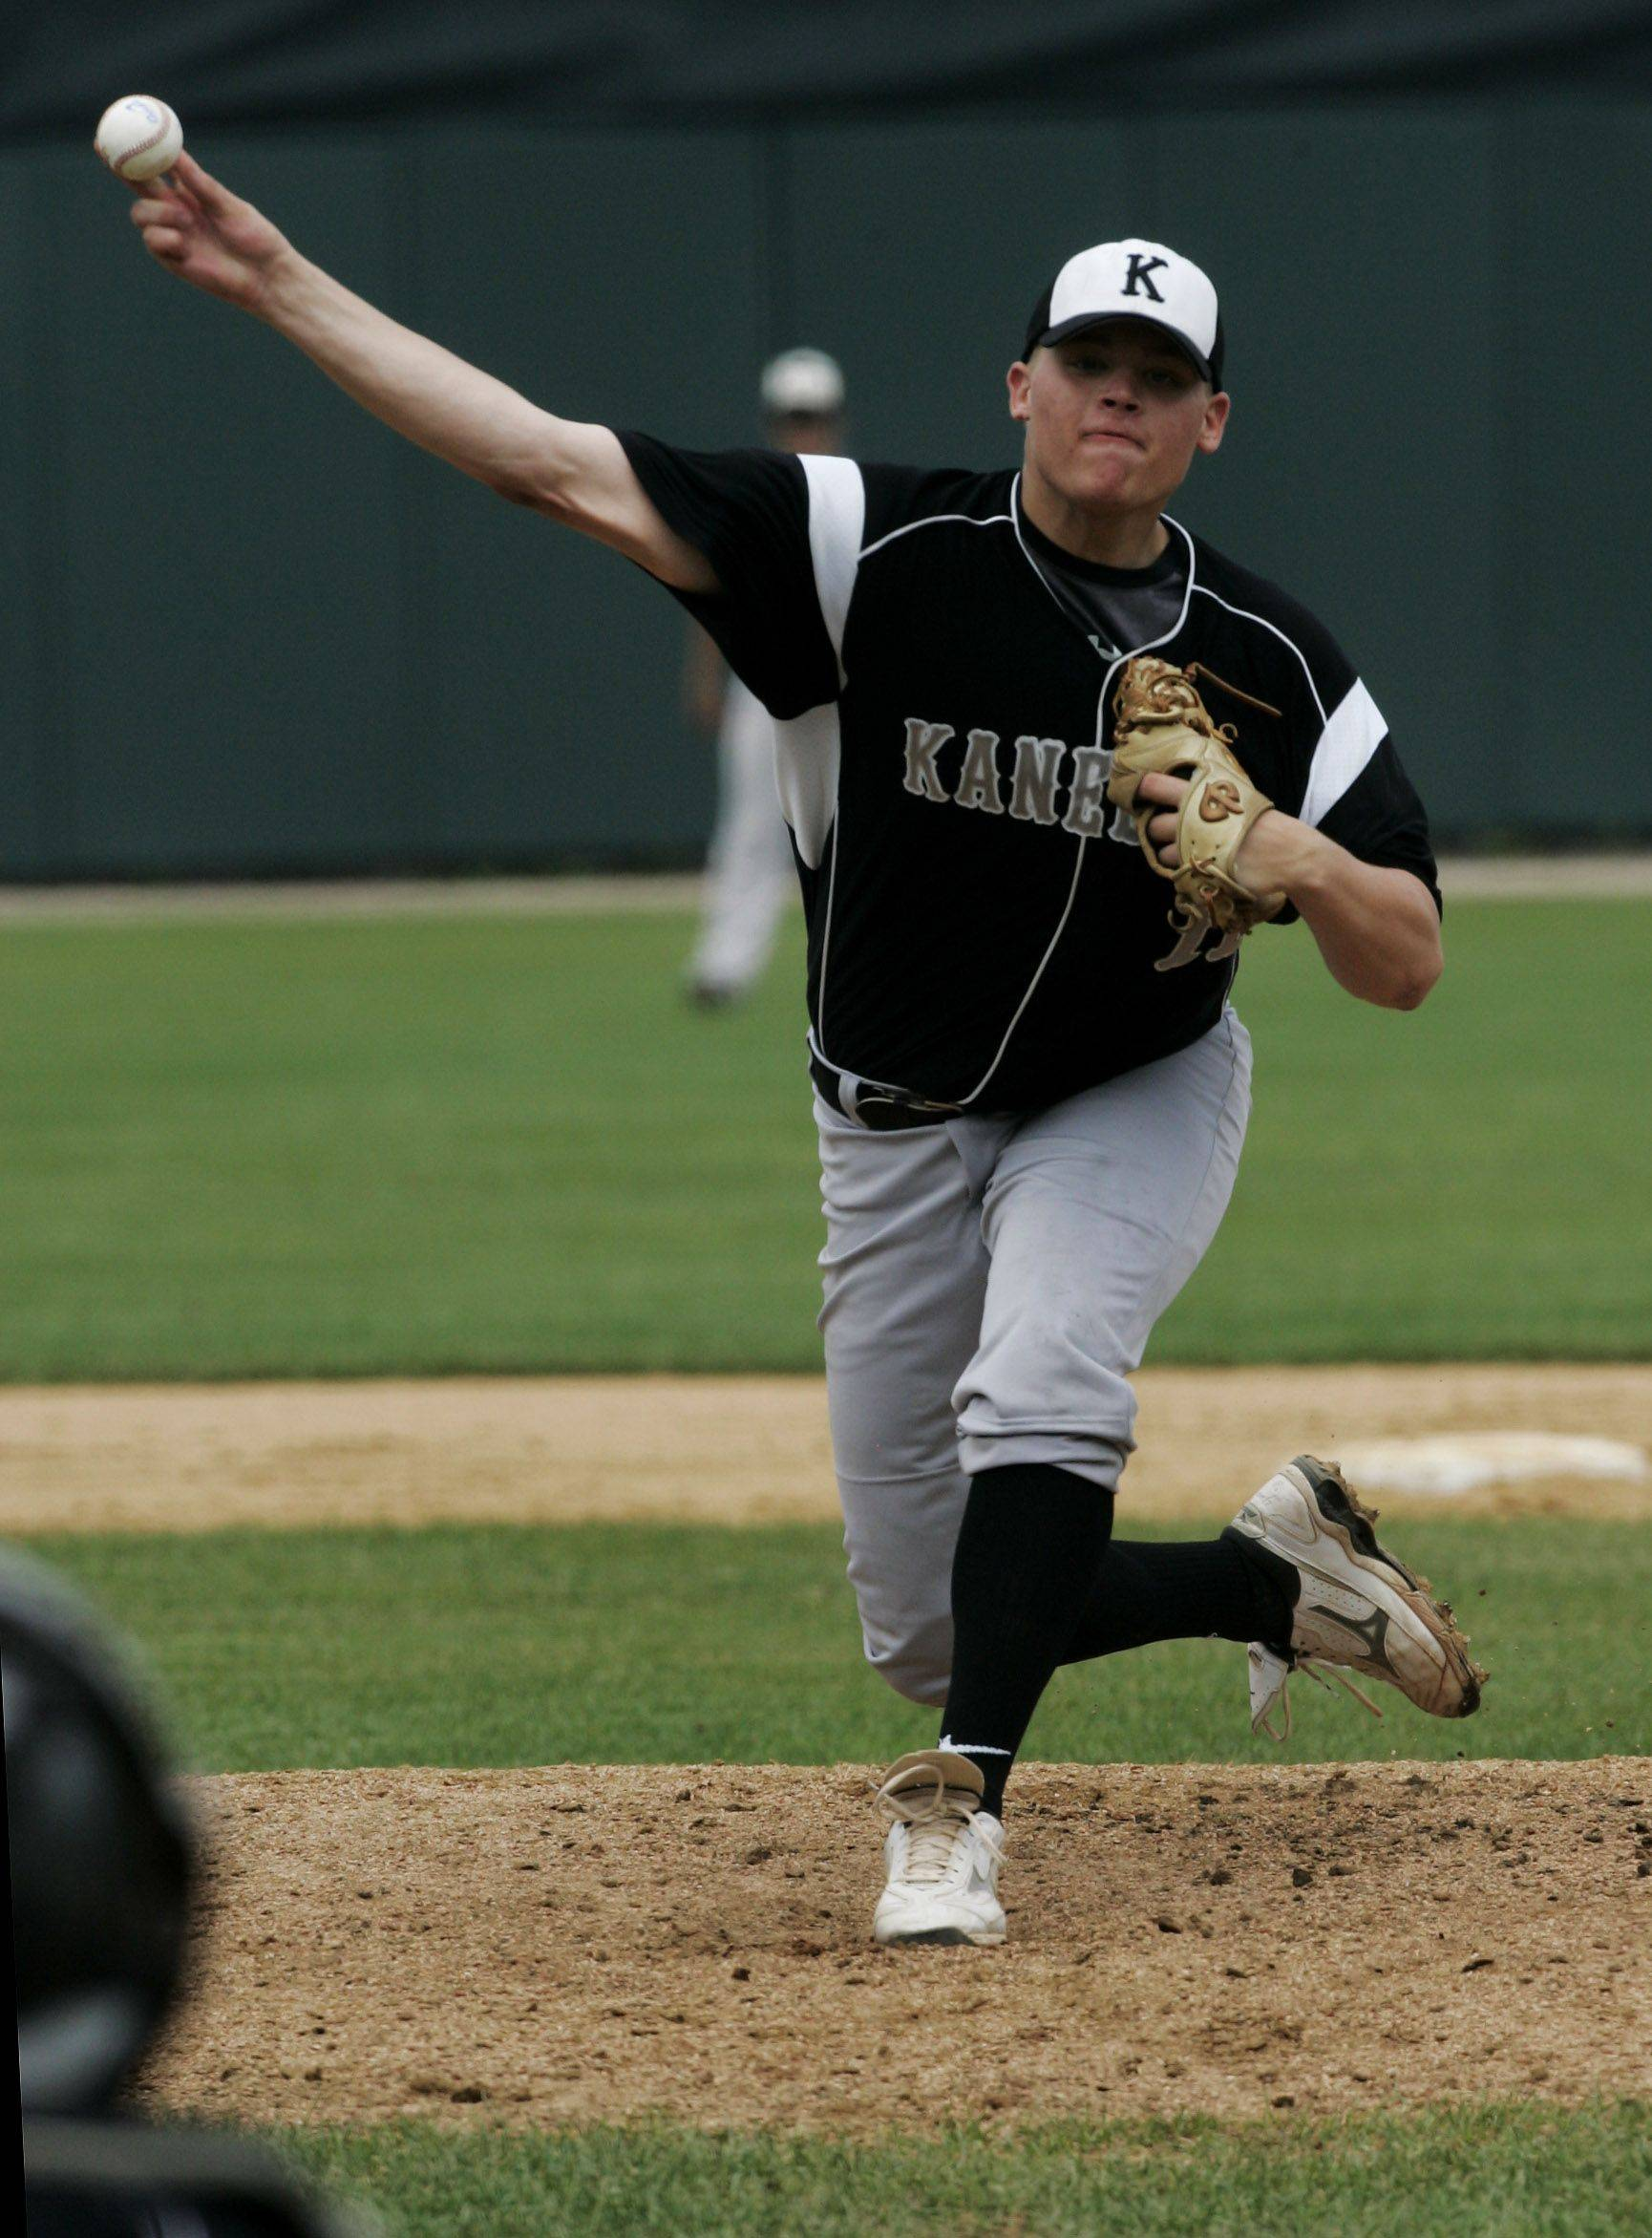 Kaneland's Bobby Thorson throws a pitch against Waterloo.